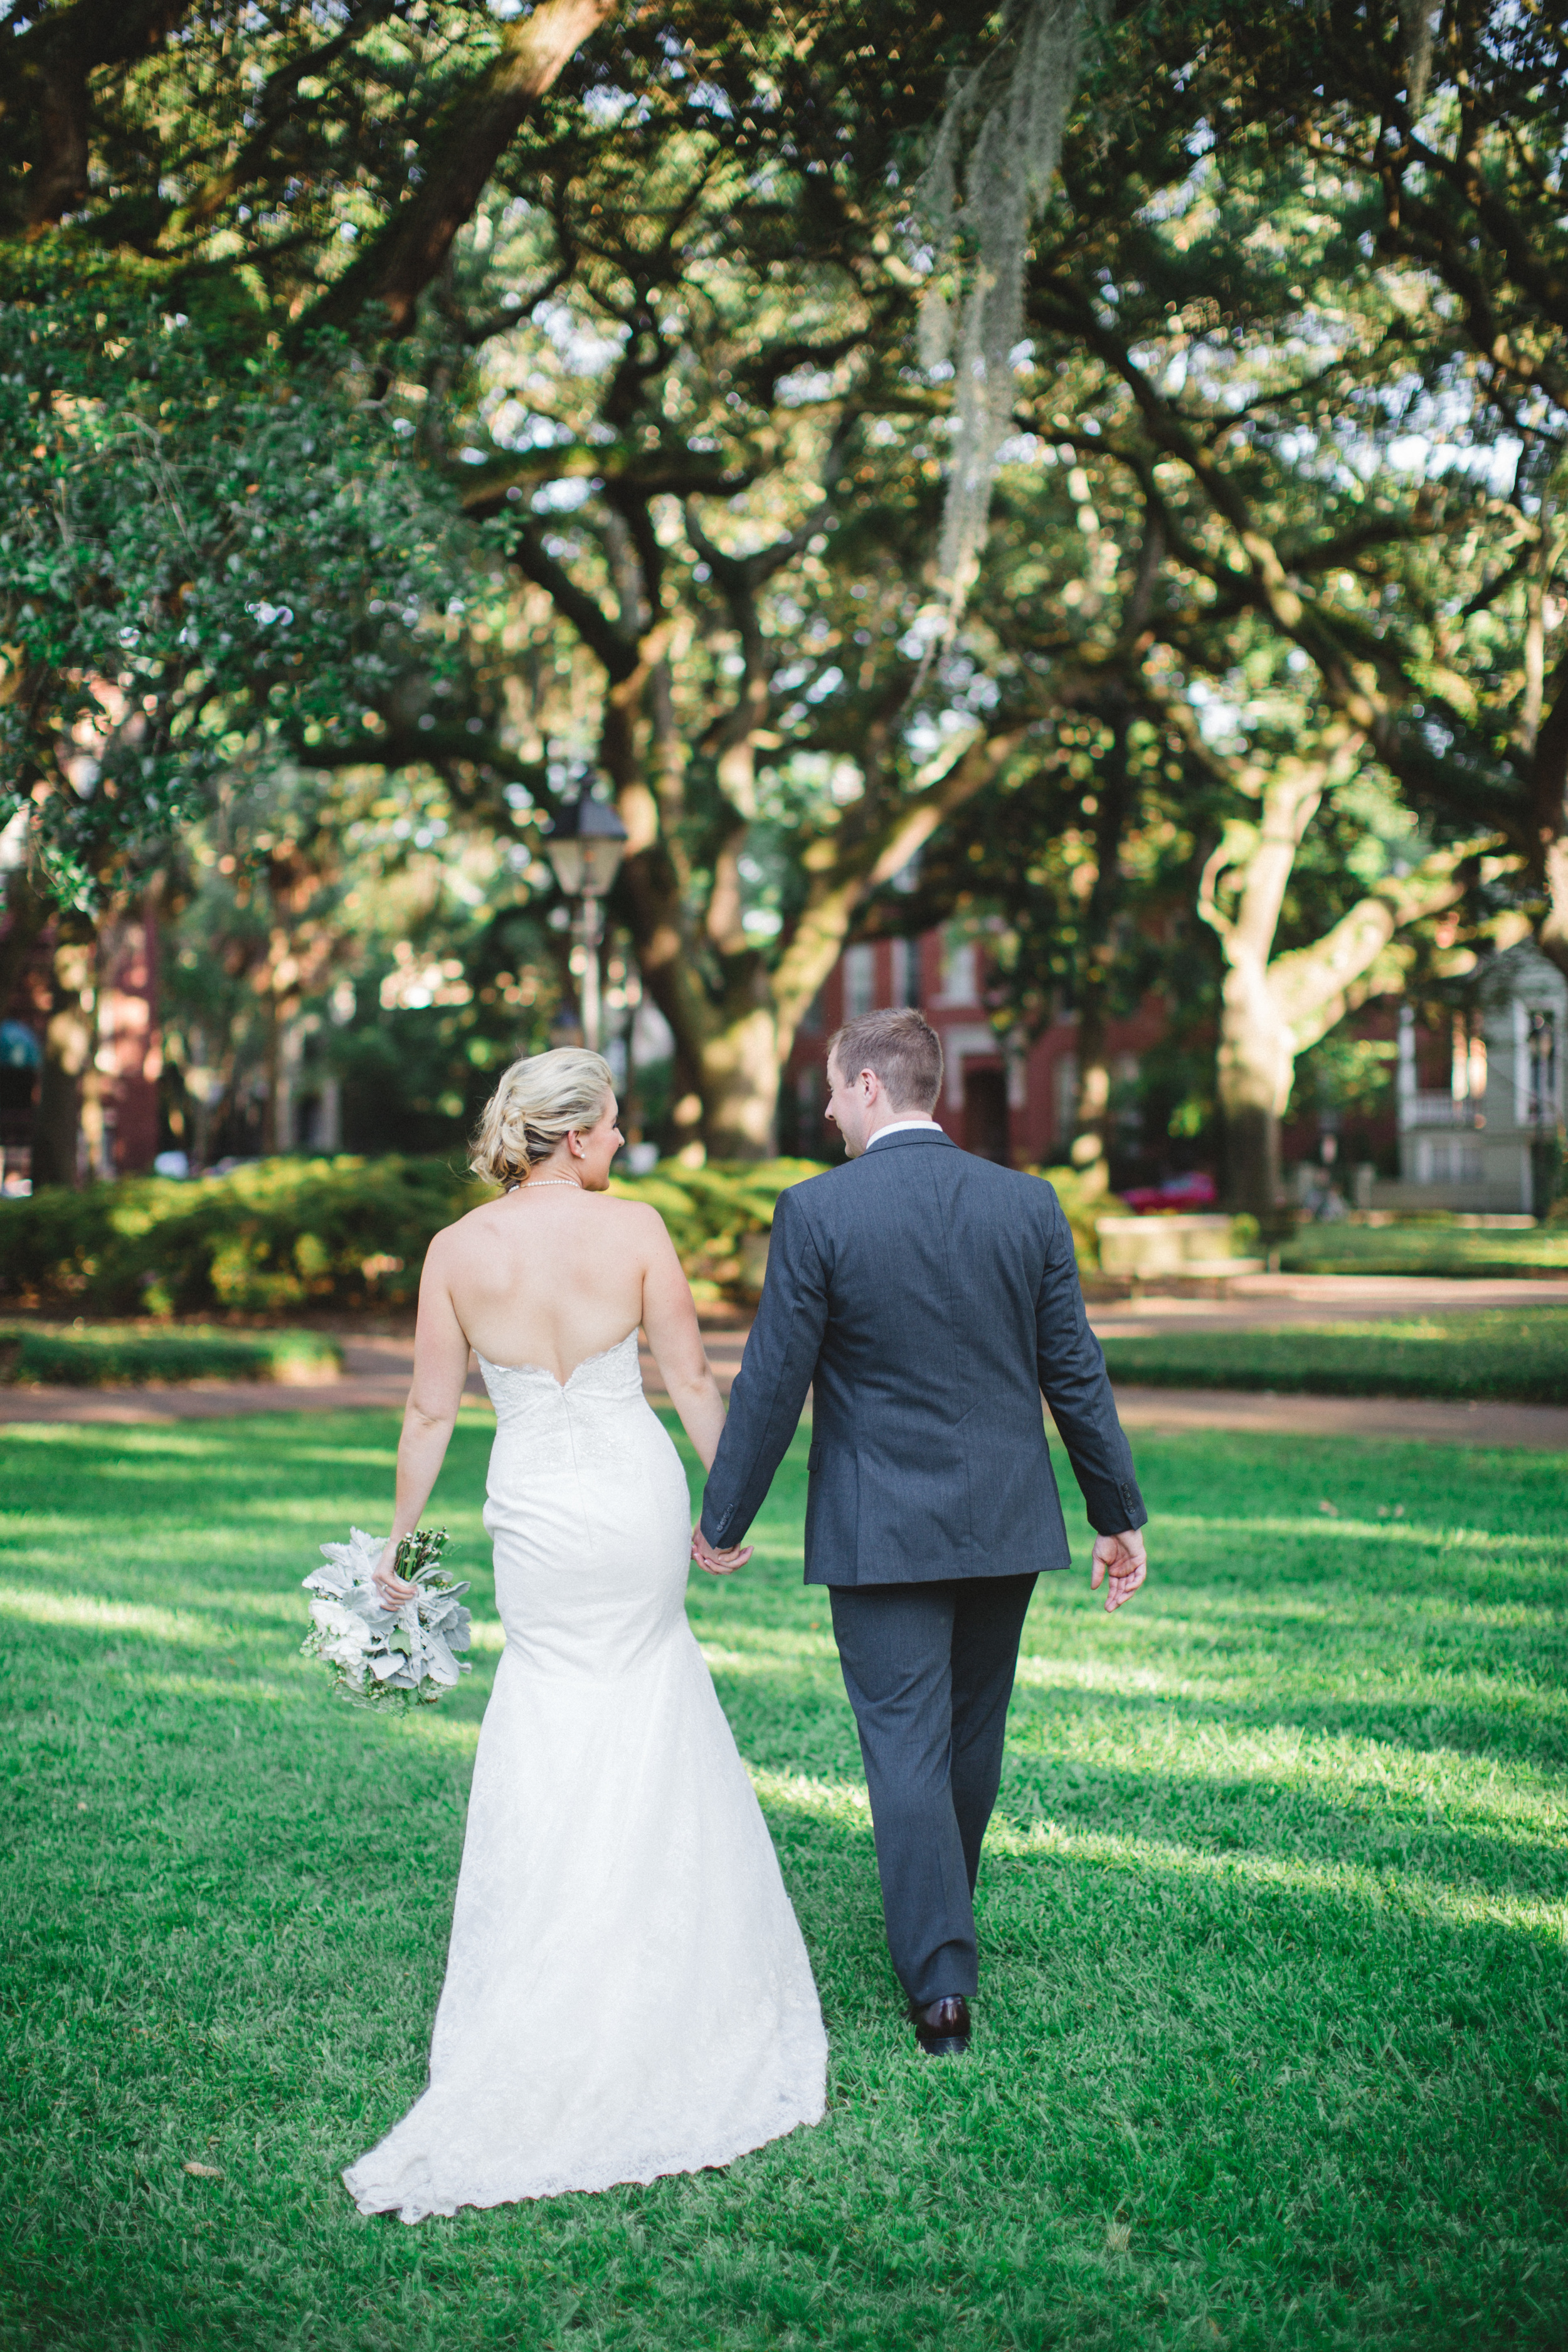 Hillary-and-Brian-izzy-hudgins-photography-anais-anette-tristan-lace-mermaid-wedding-dress-ivory-and-beau-bridal-boutique-savannah-bridal-boutique-savannah-wedding-dresses-savannah-bridal-gowns-savannah-wedding-dresses-first-babtist-savannah-26.jpg